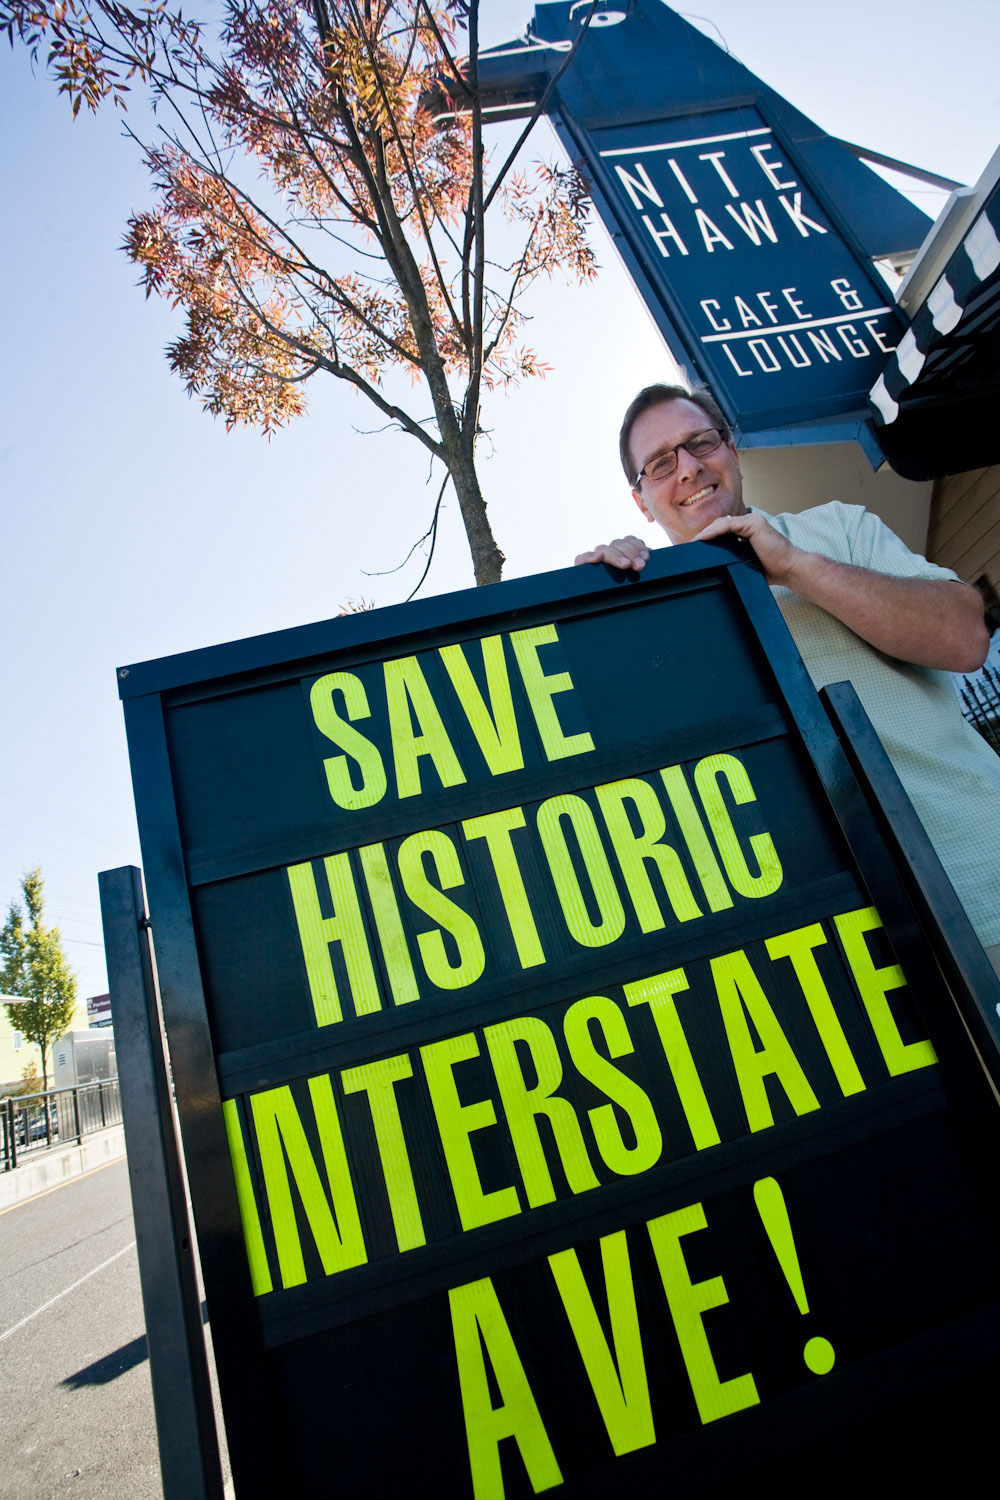 Bill Mildenberger Jr. Manager of the Nite Hawk Cafe with Save Historic Intersate AVE sign